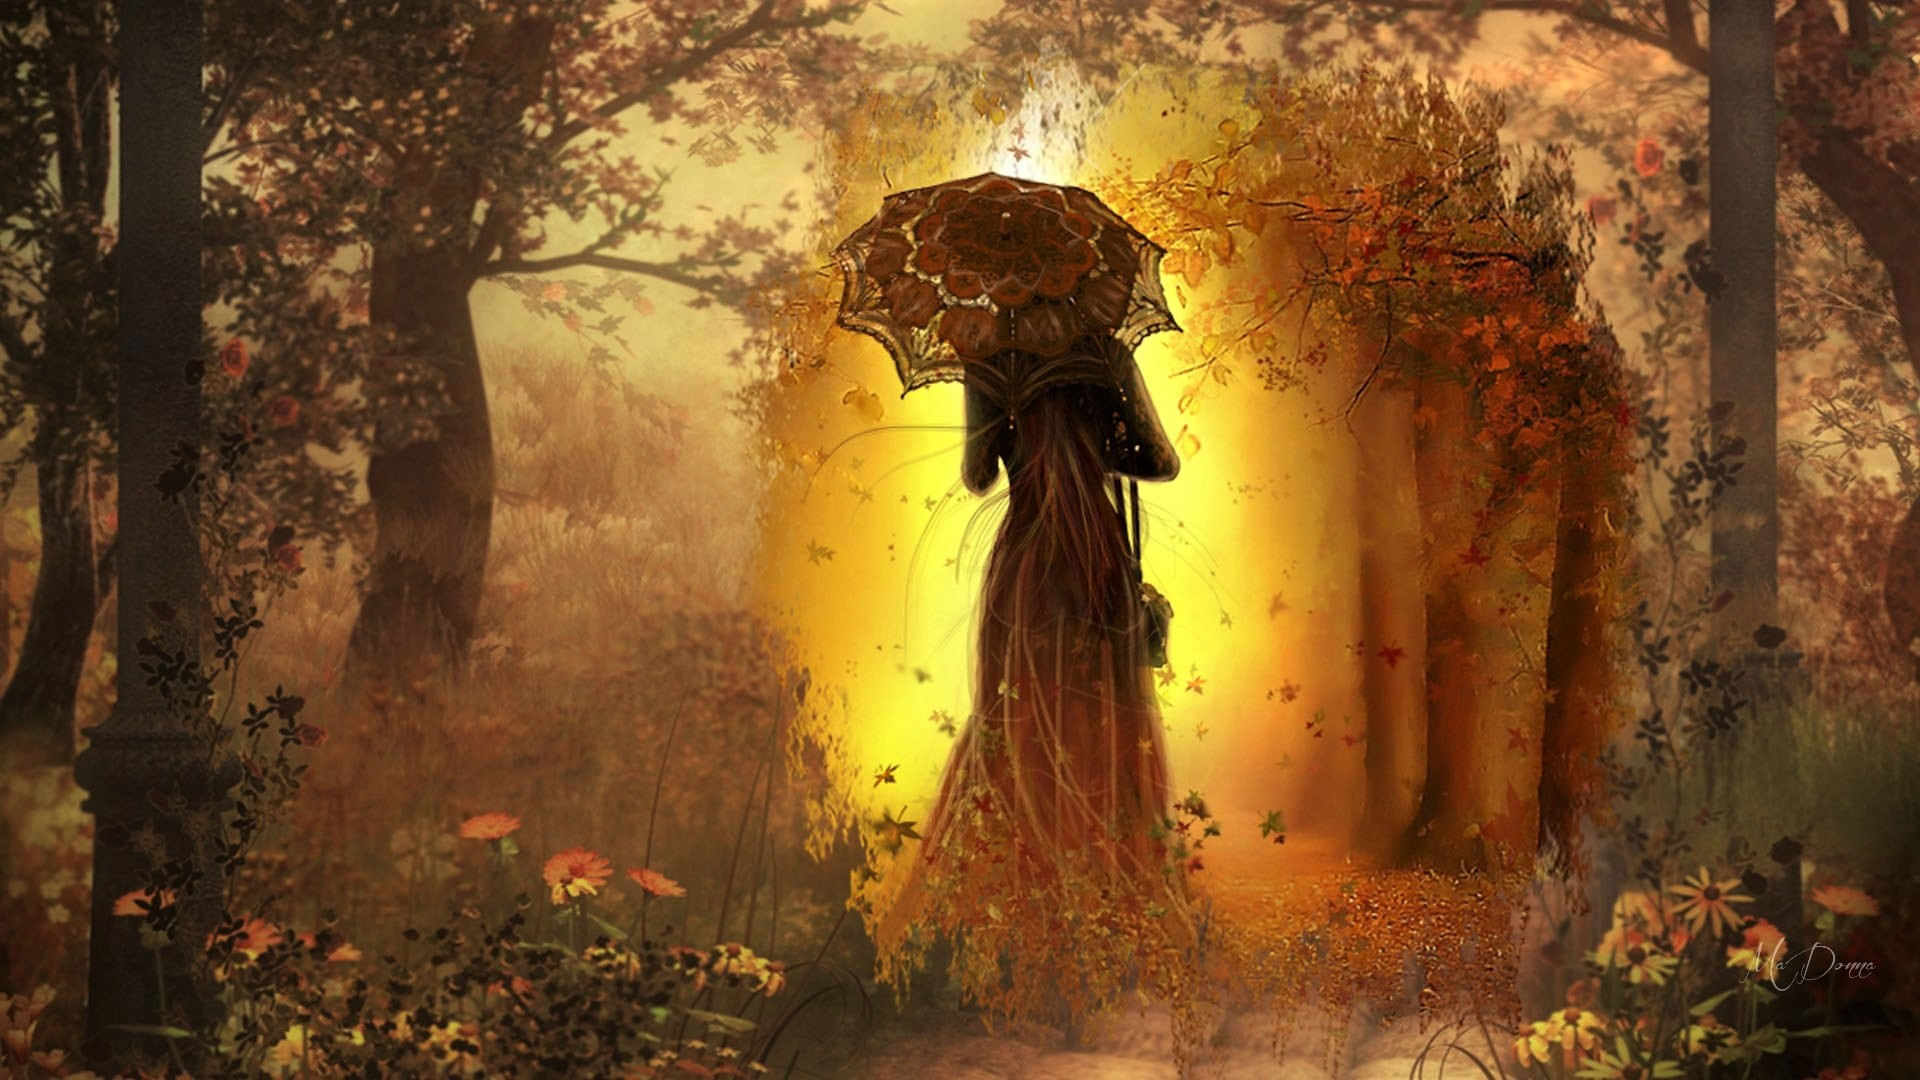 Autumn Fall Wallpaper 1600x900 Gothic Autumn Full Hd Wallpaper And Background Image